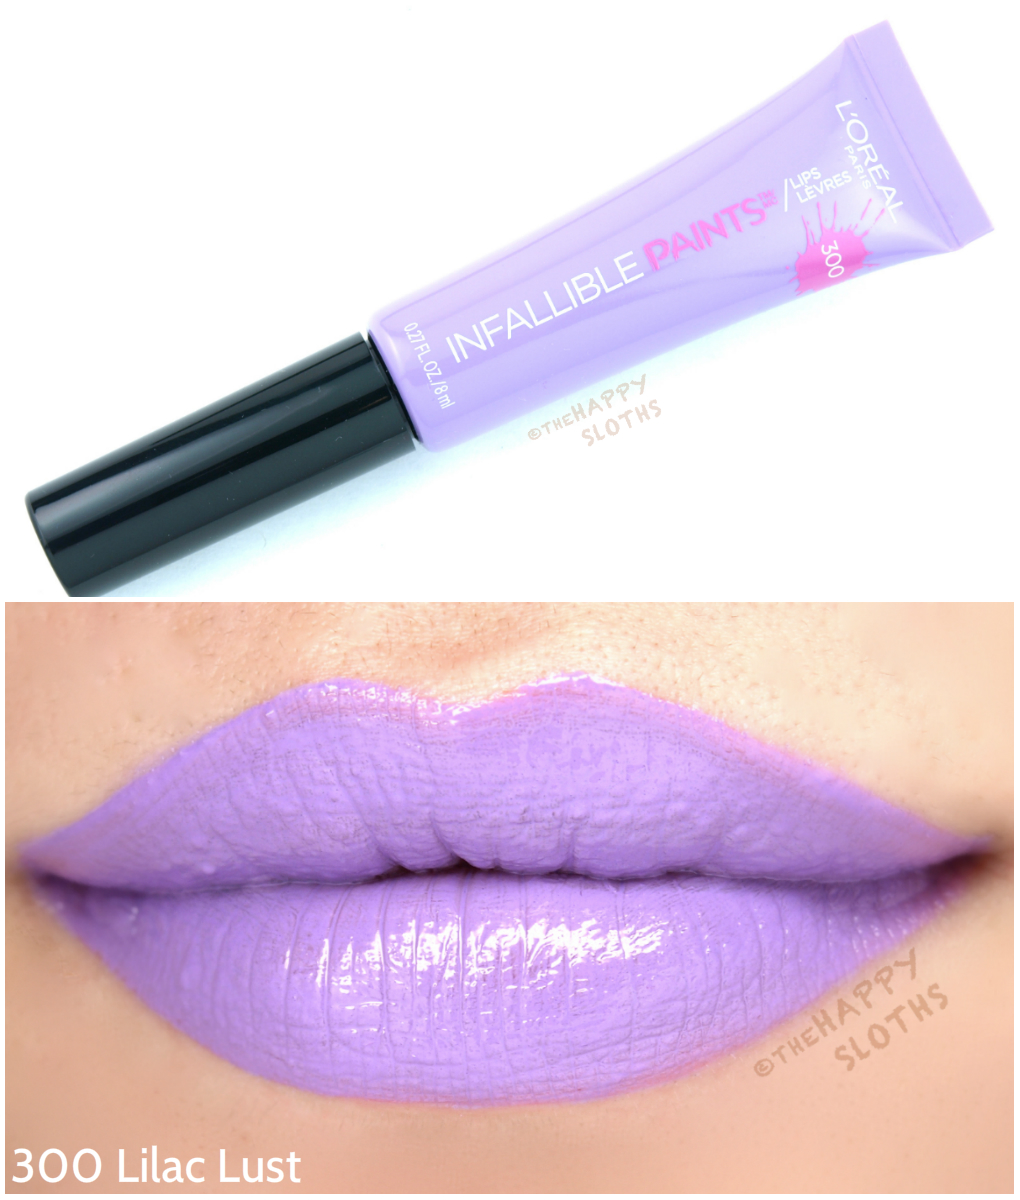 L'Oreal Infallible Lip Paints 300 Lilac Lust